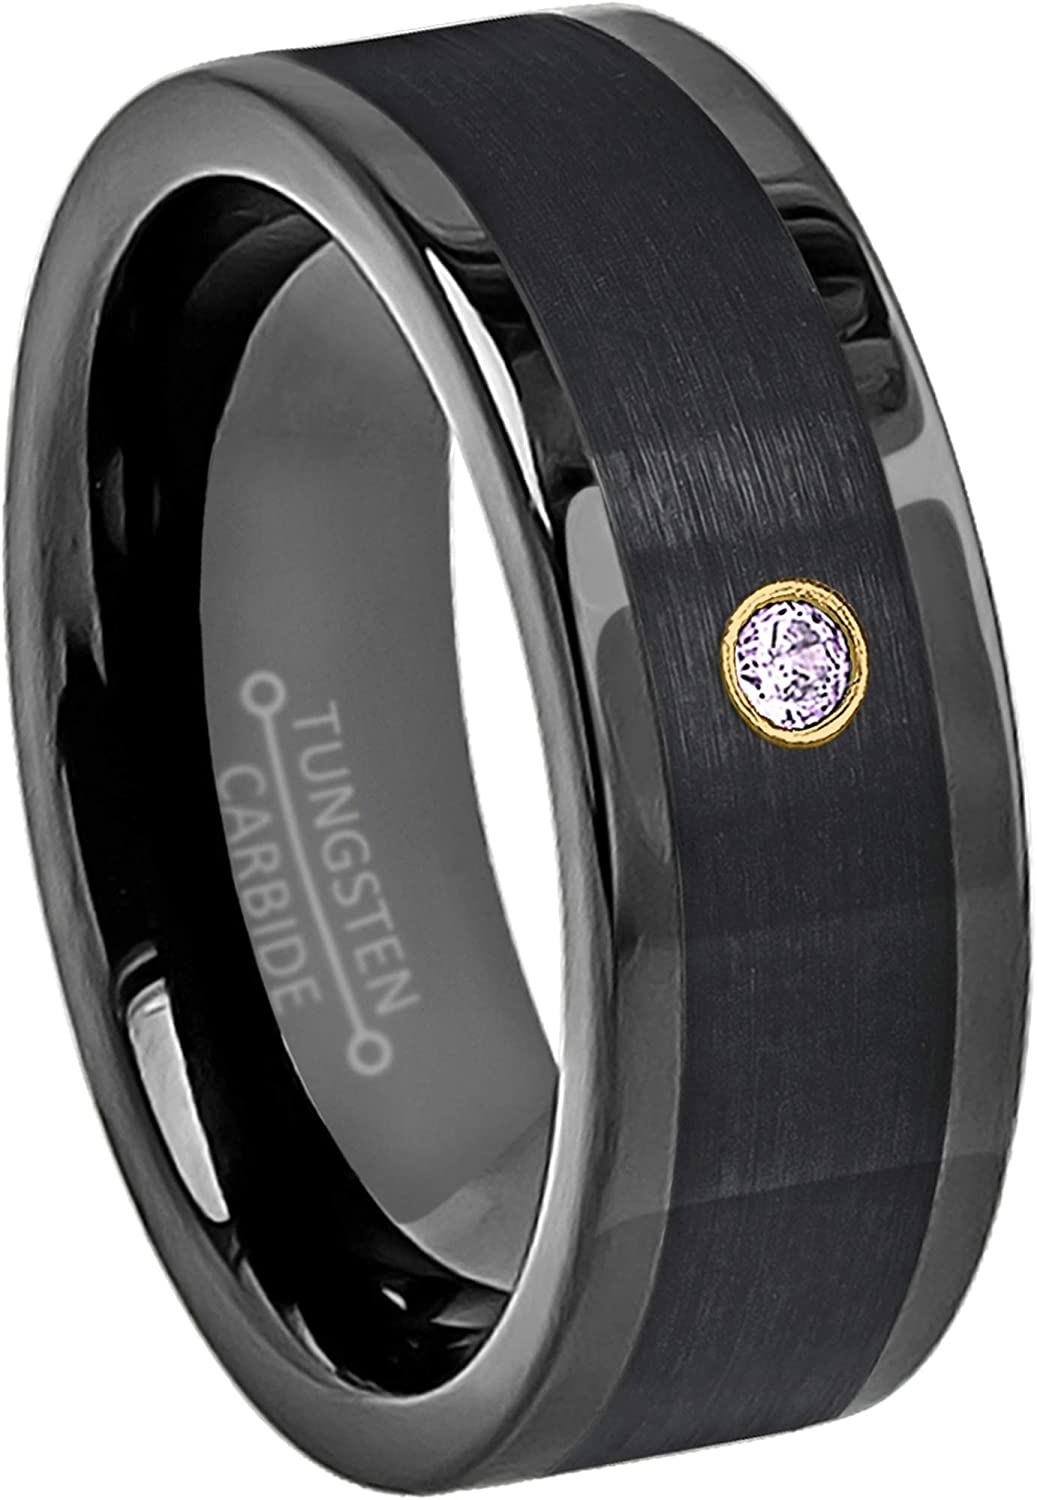 8mm Pipe Cut Black Tungsten Wedding Band February Birthstone Ring 0.07ct Amethyst Solitaire Ring